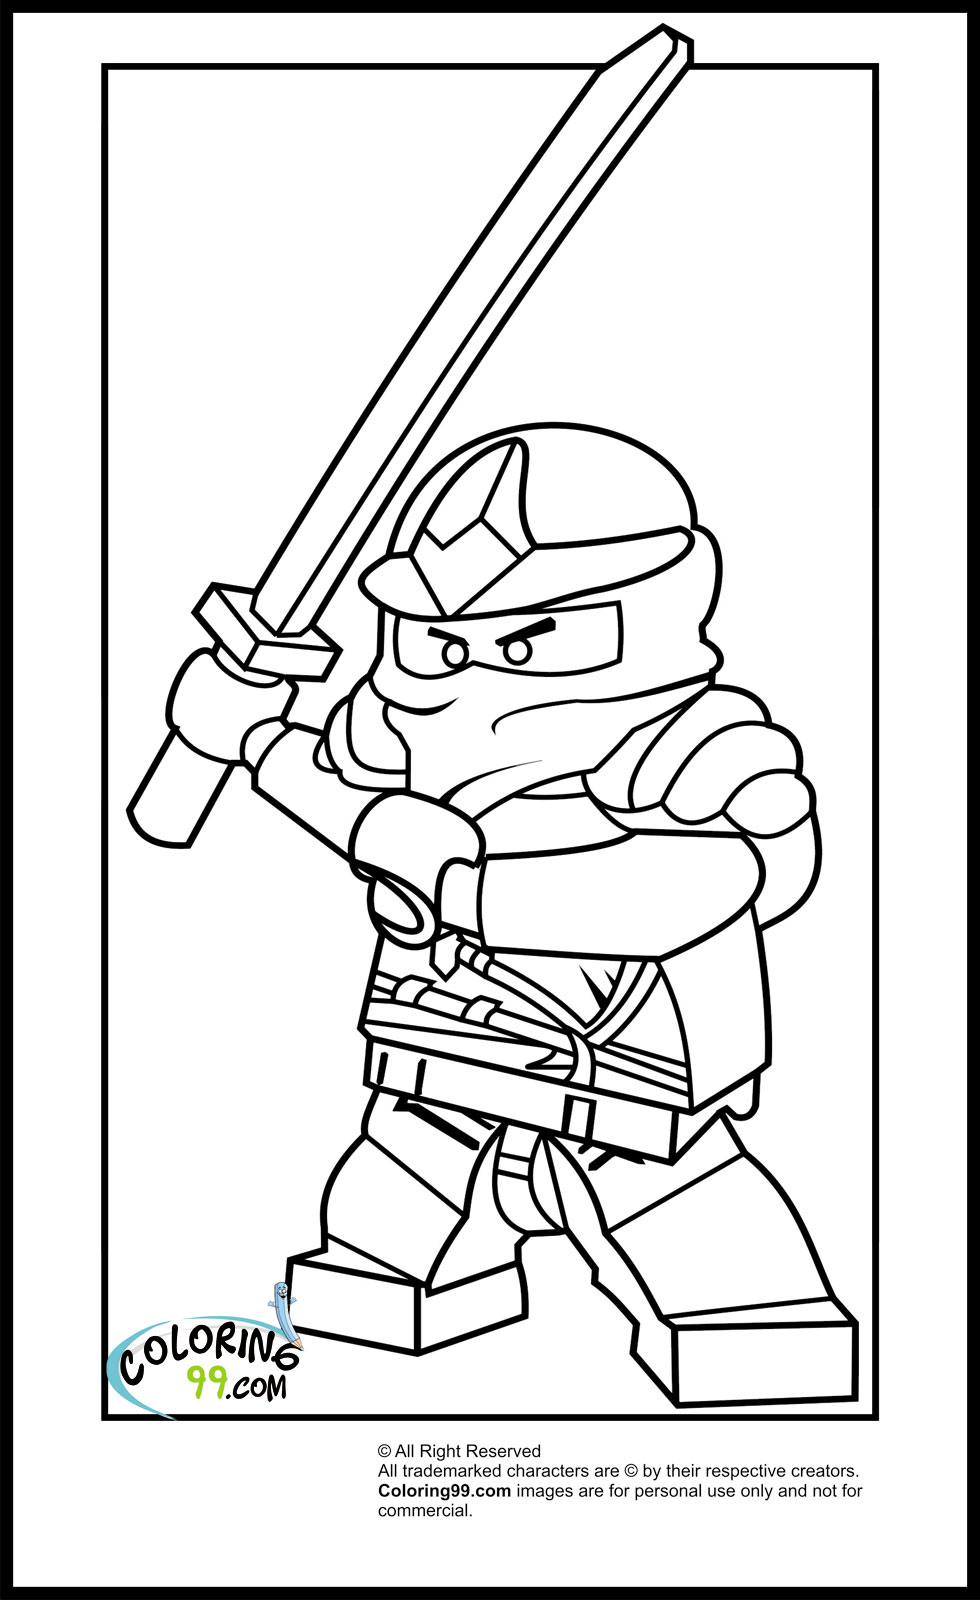 zane ninjago coloring pages - photo#12